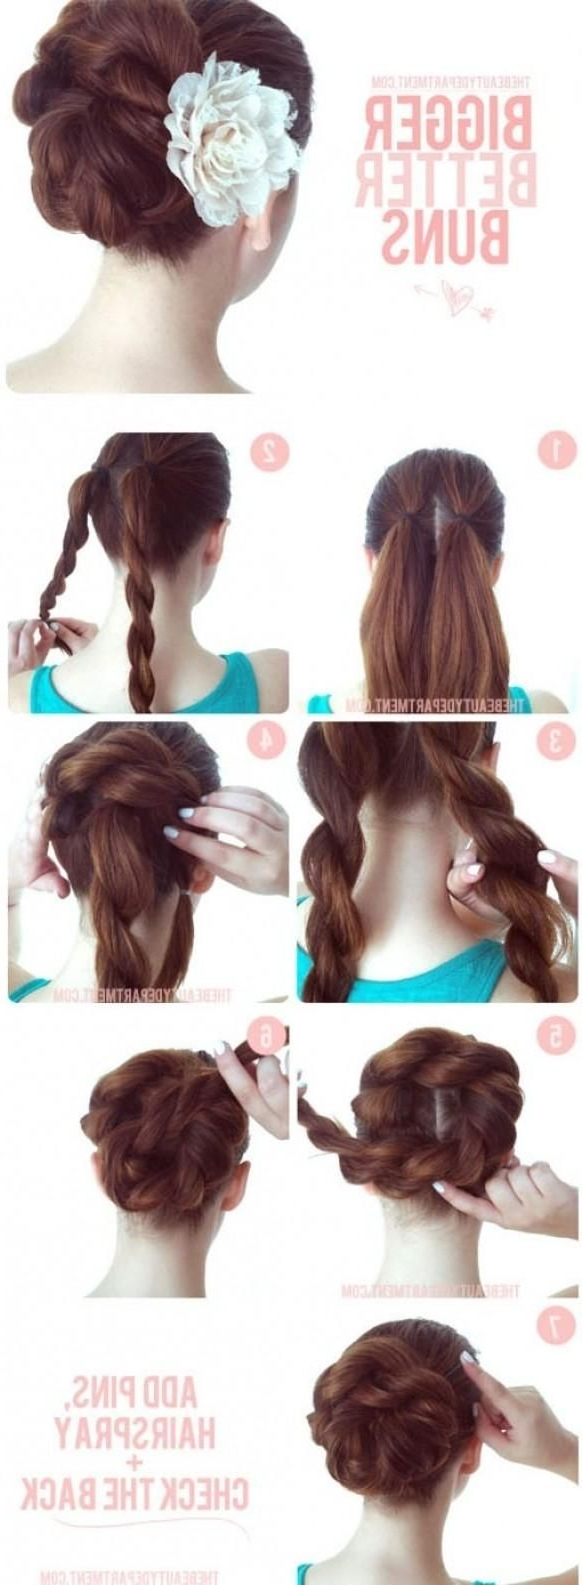 15 Braided Bun Updos Ideas – Popular Haircuts Pertaining To Well Known Low Twisted Bun Wedding Hairstyles For Long Hair (Gallery 12 of 20)